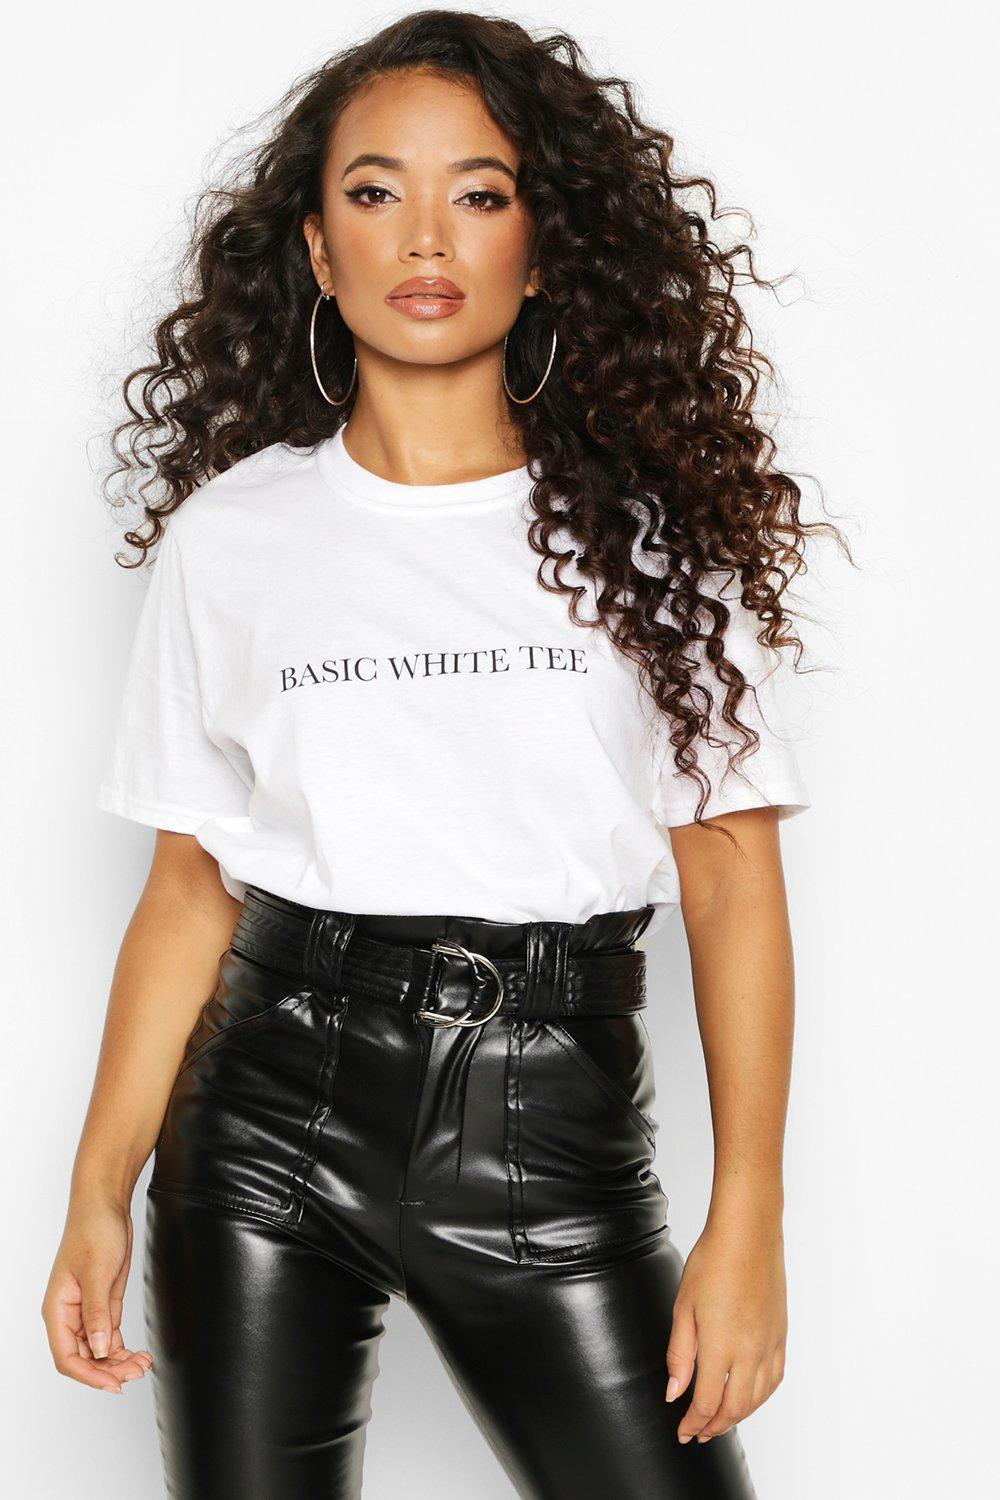 Womens Petite 'Basic White Tee' Slogan T-Shirt - S, White - Boohoo.com